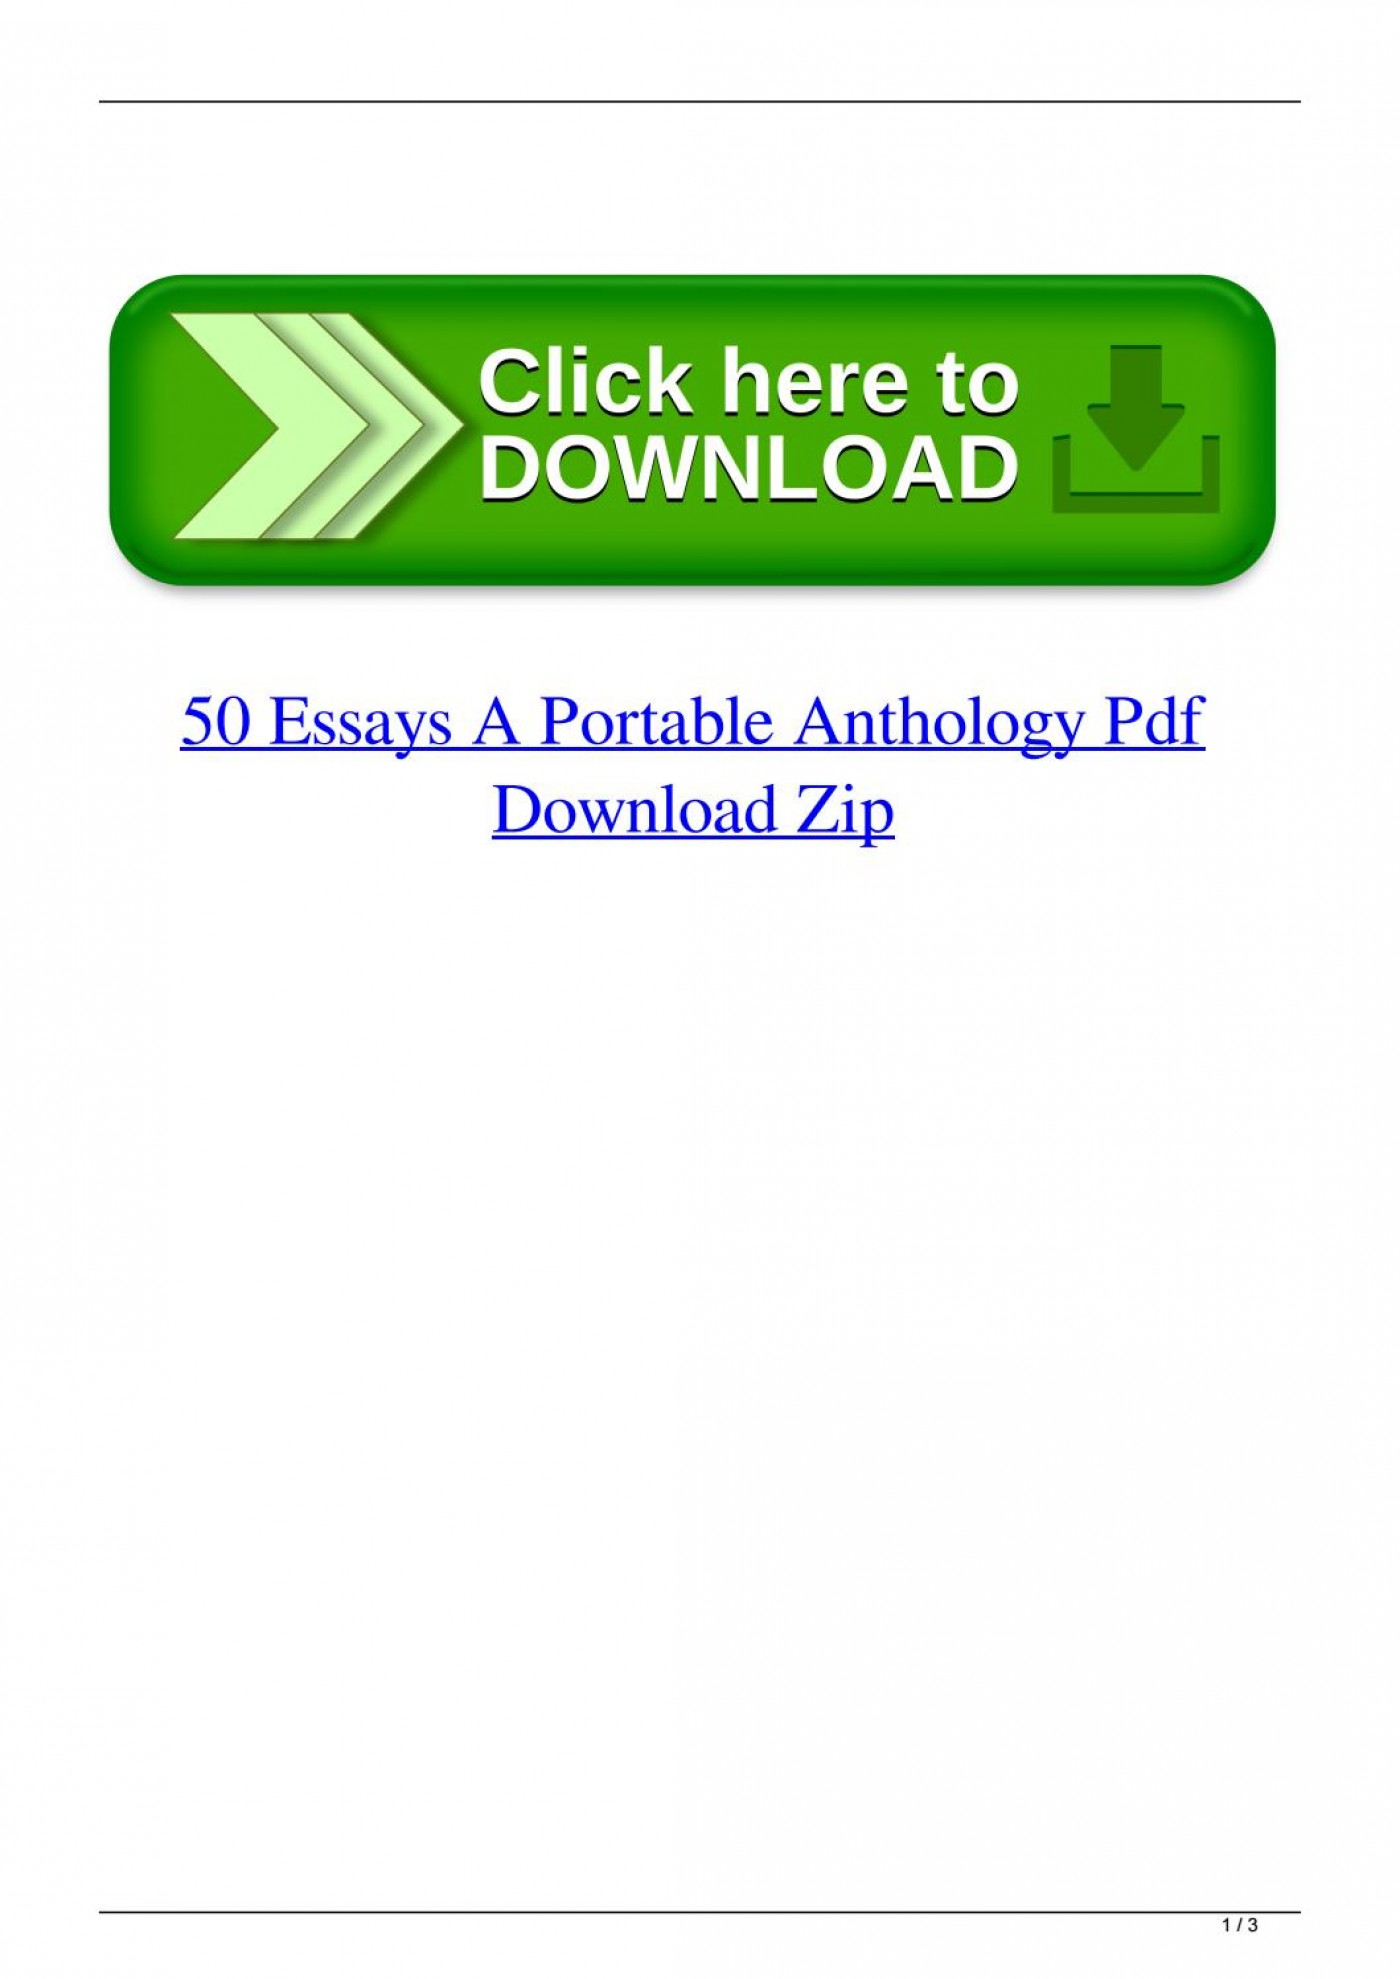 016 Essay Example Page 1 Essays Portable Anthology 4th Edition Awful 50 A Pdf Free 1400